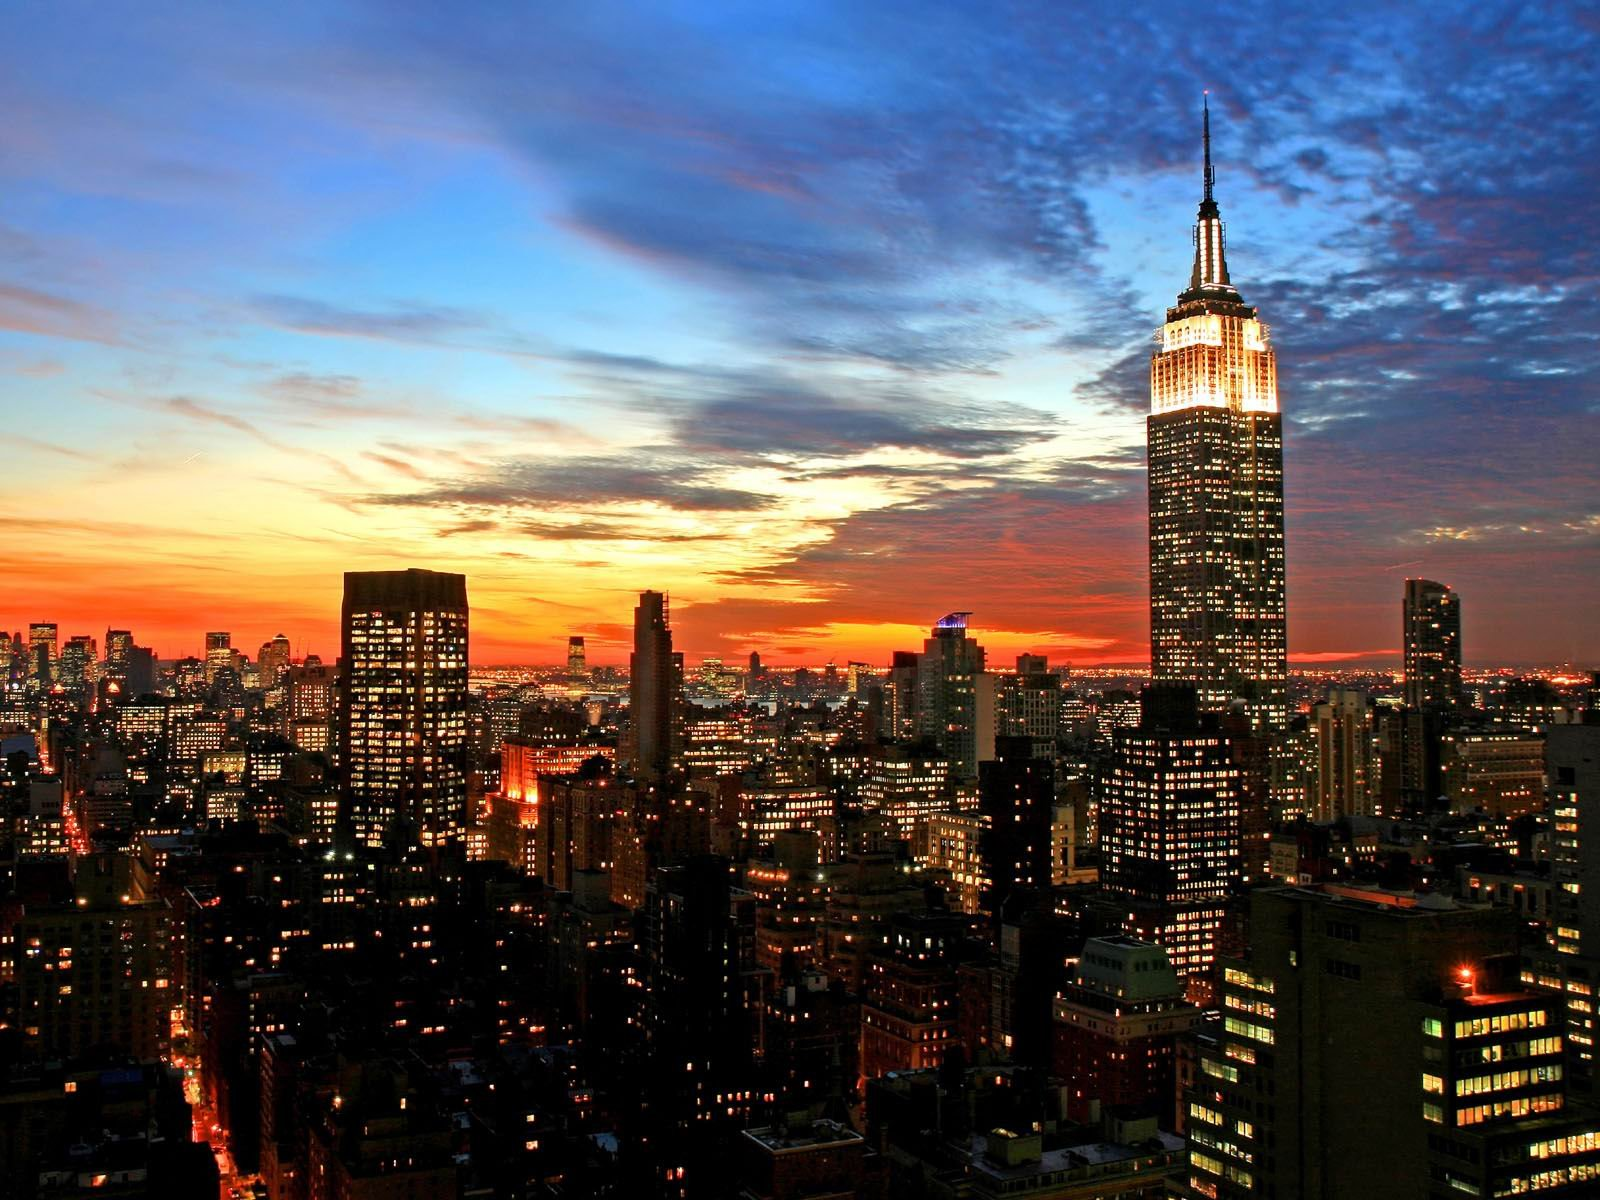 New York City Wallpapers Hd Pictures Wallpaper 1600x1200